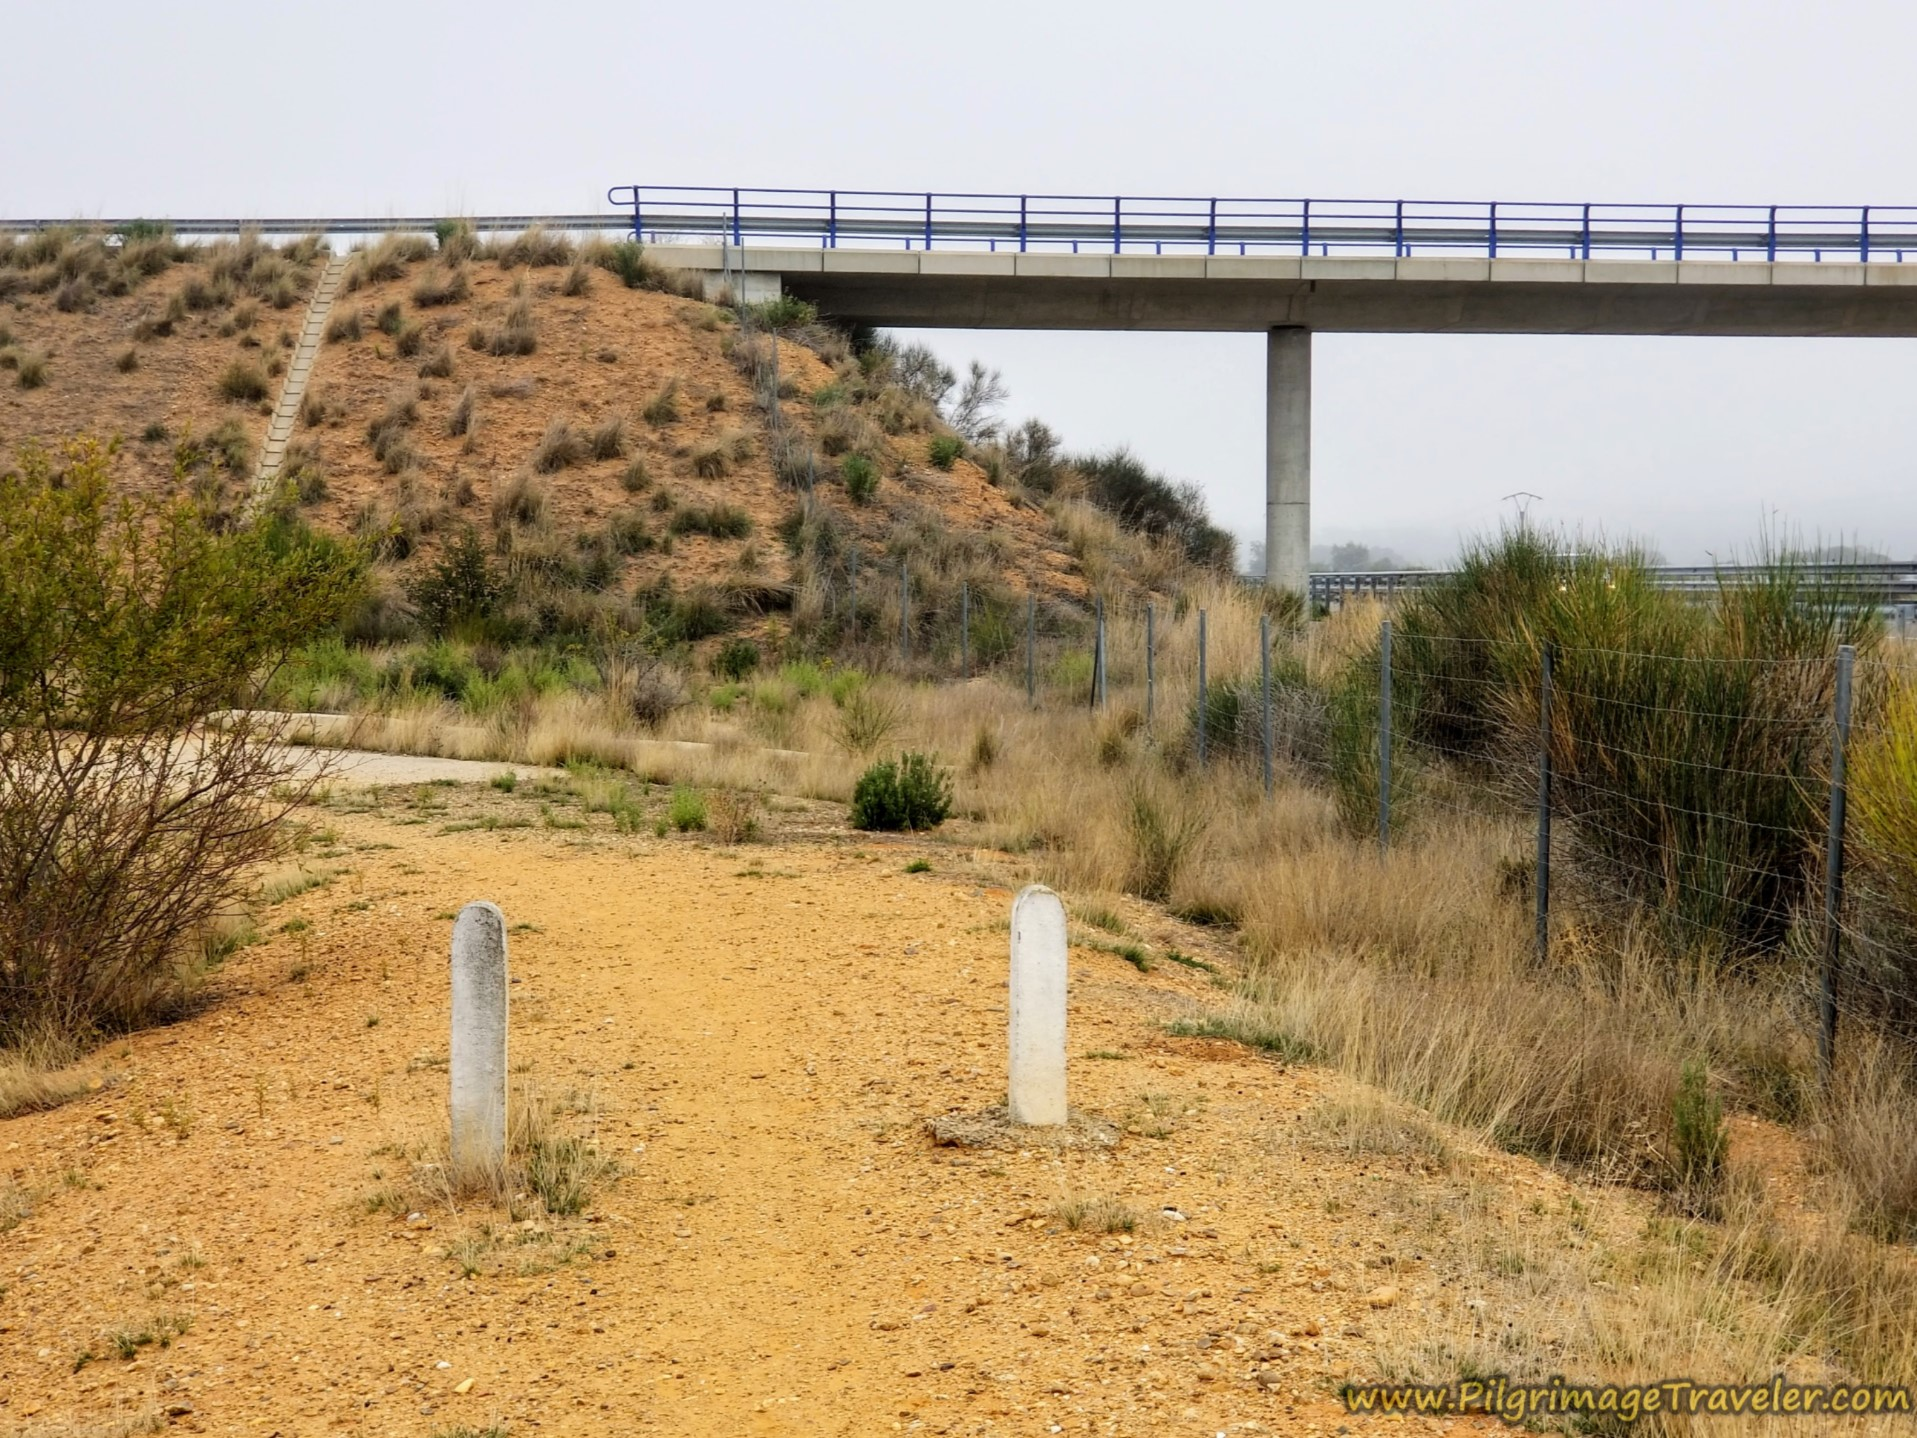 Fourth Overpass of the A-66